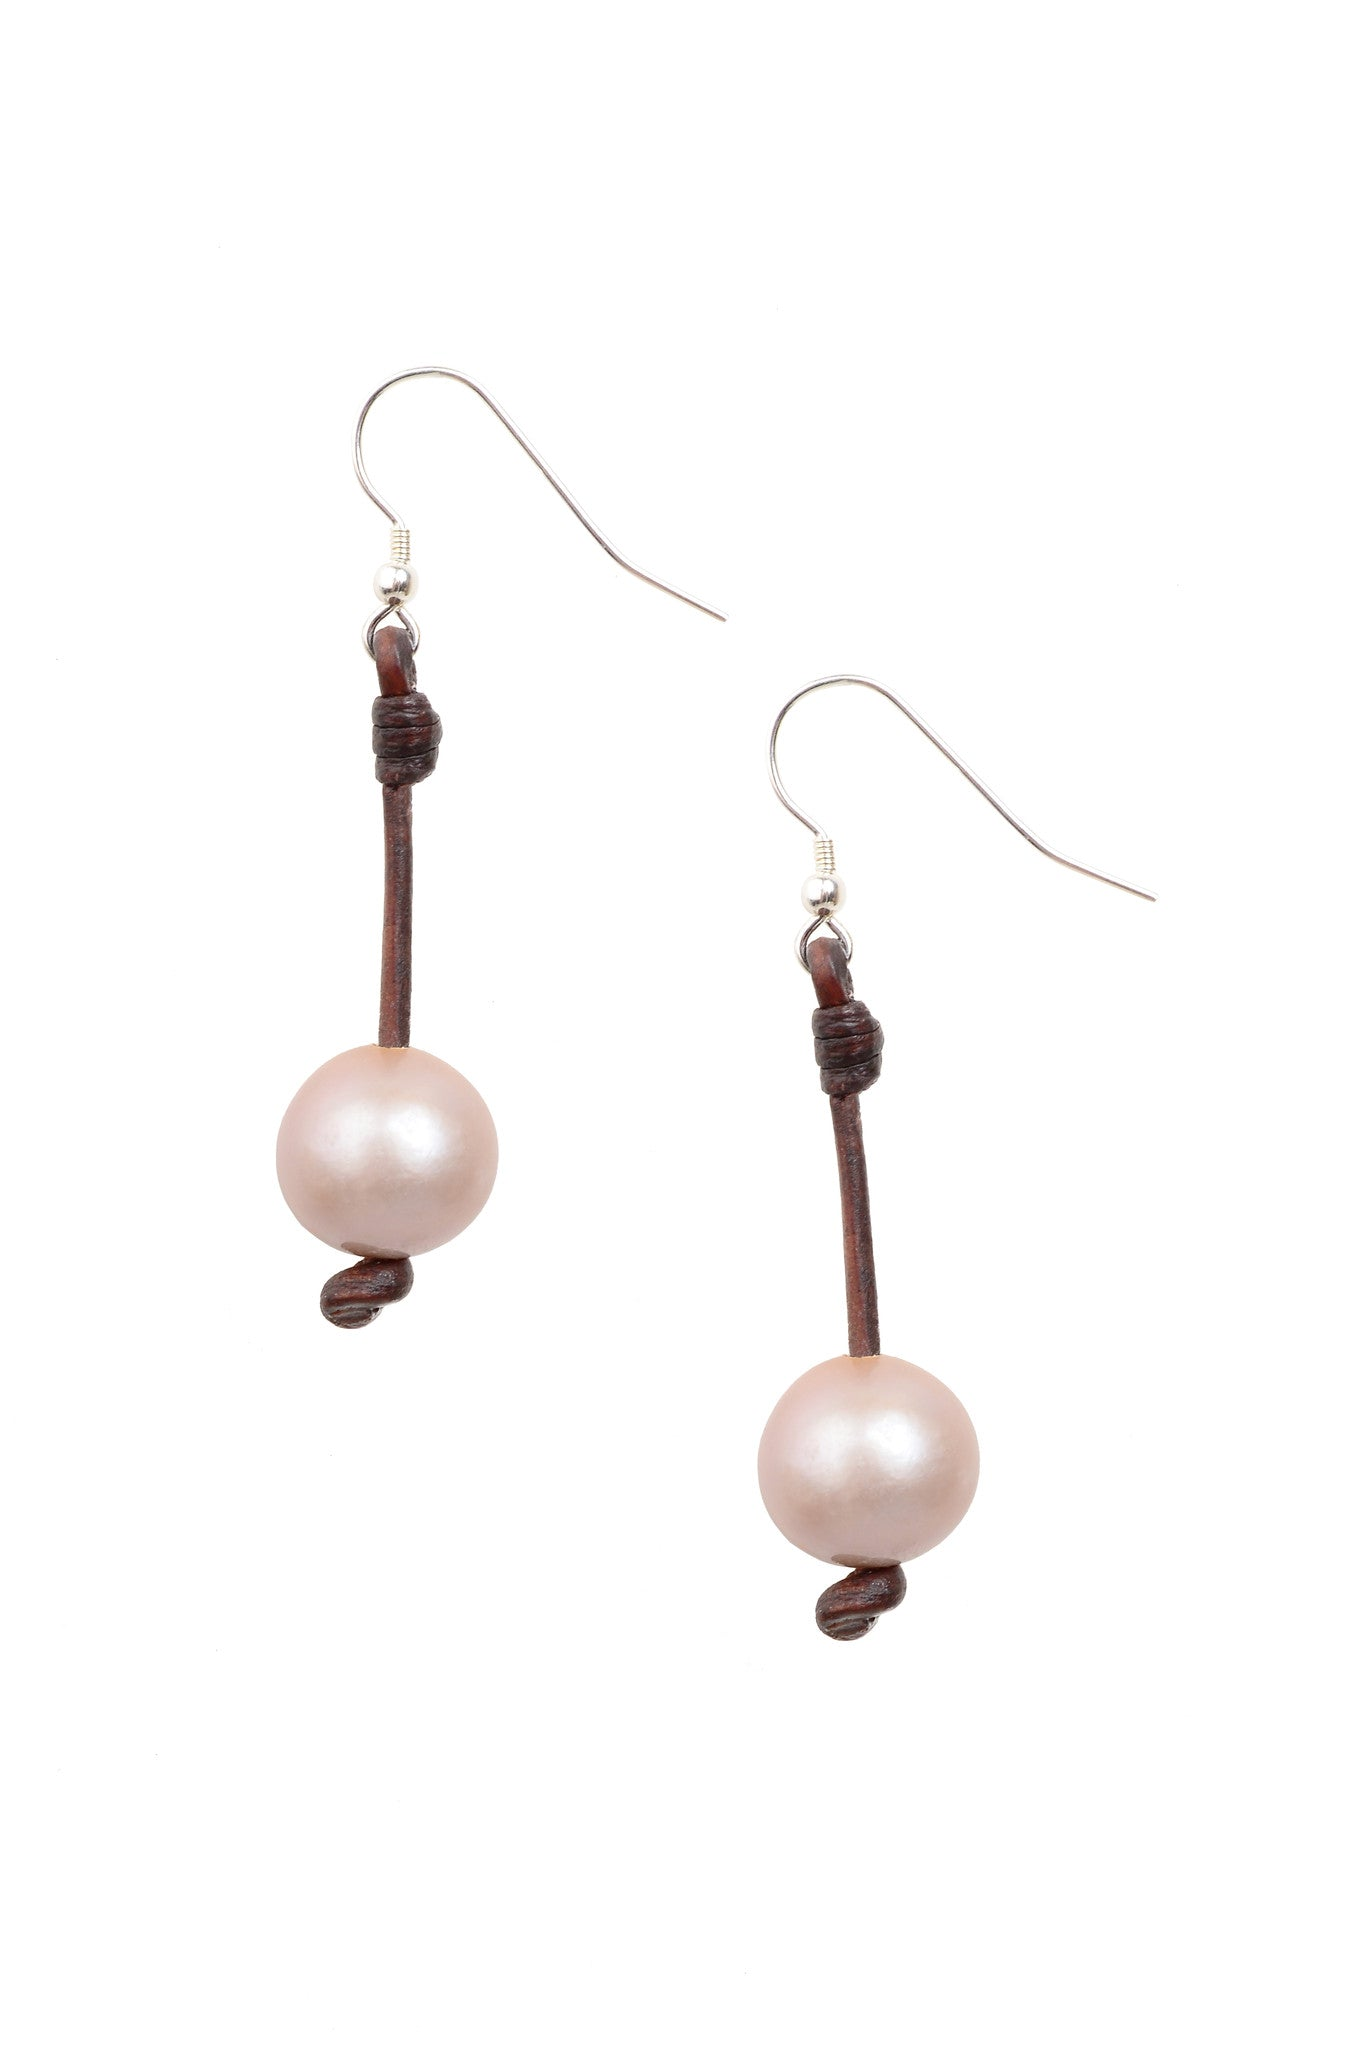 Pink Seaplicity Earrings - Hottest Designer Pearl and Leather Jewelry | VINCENT PEACH